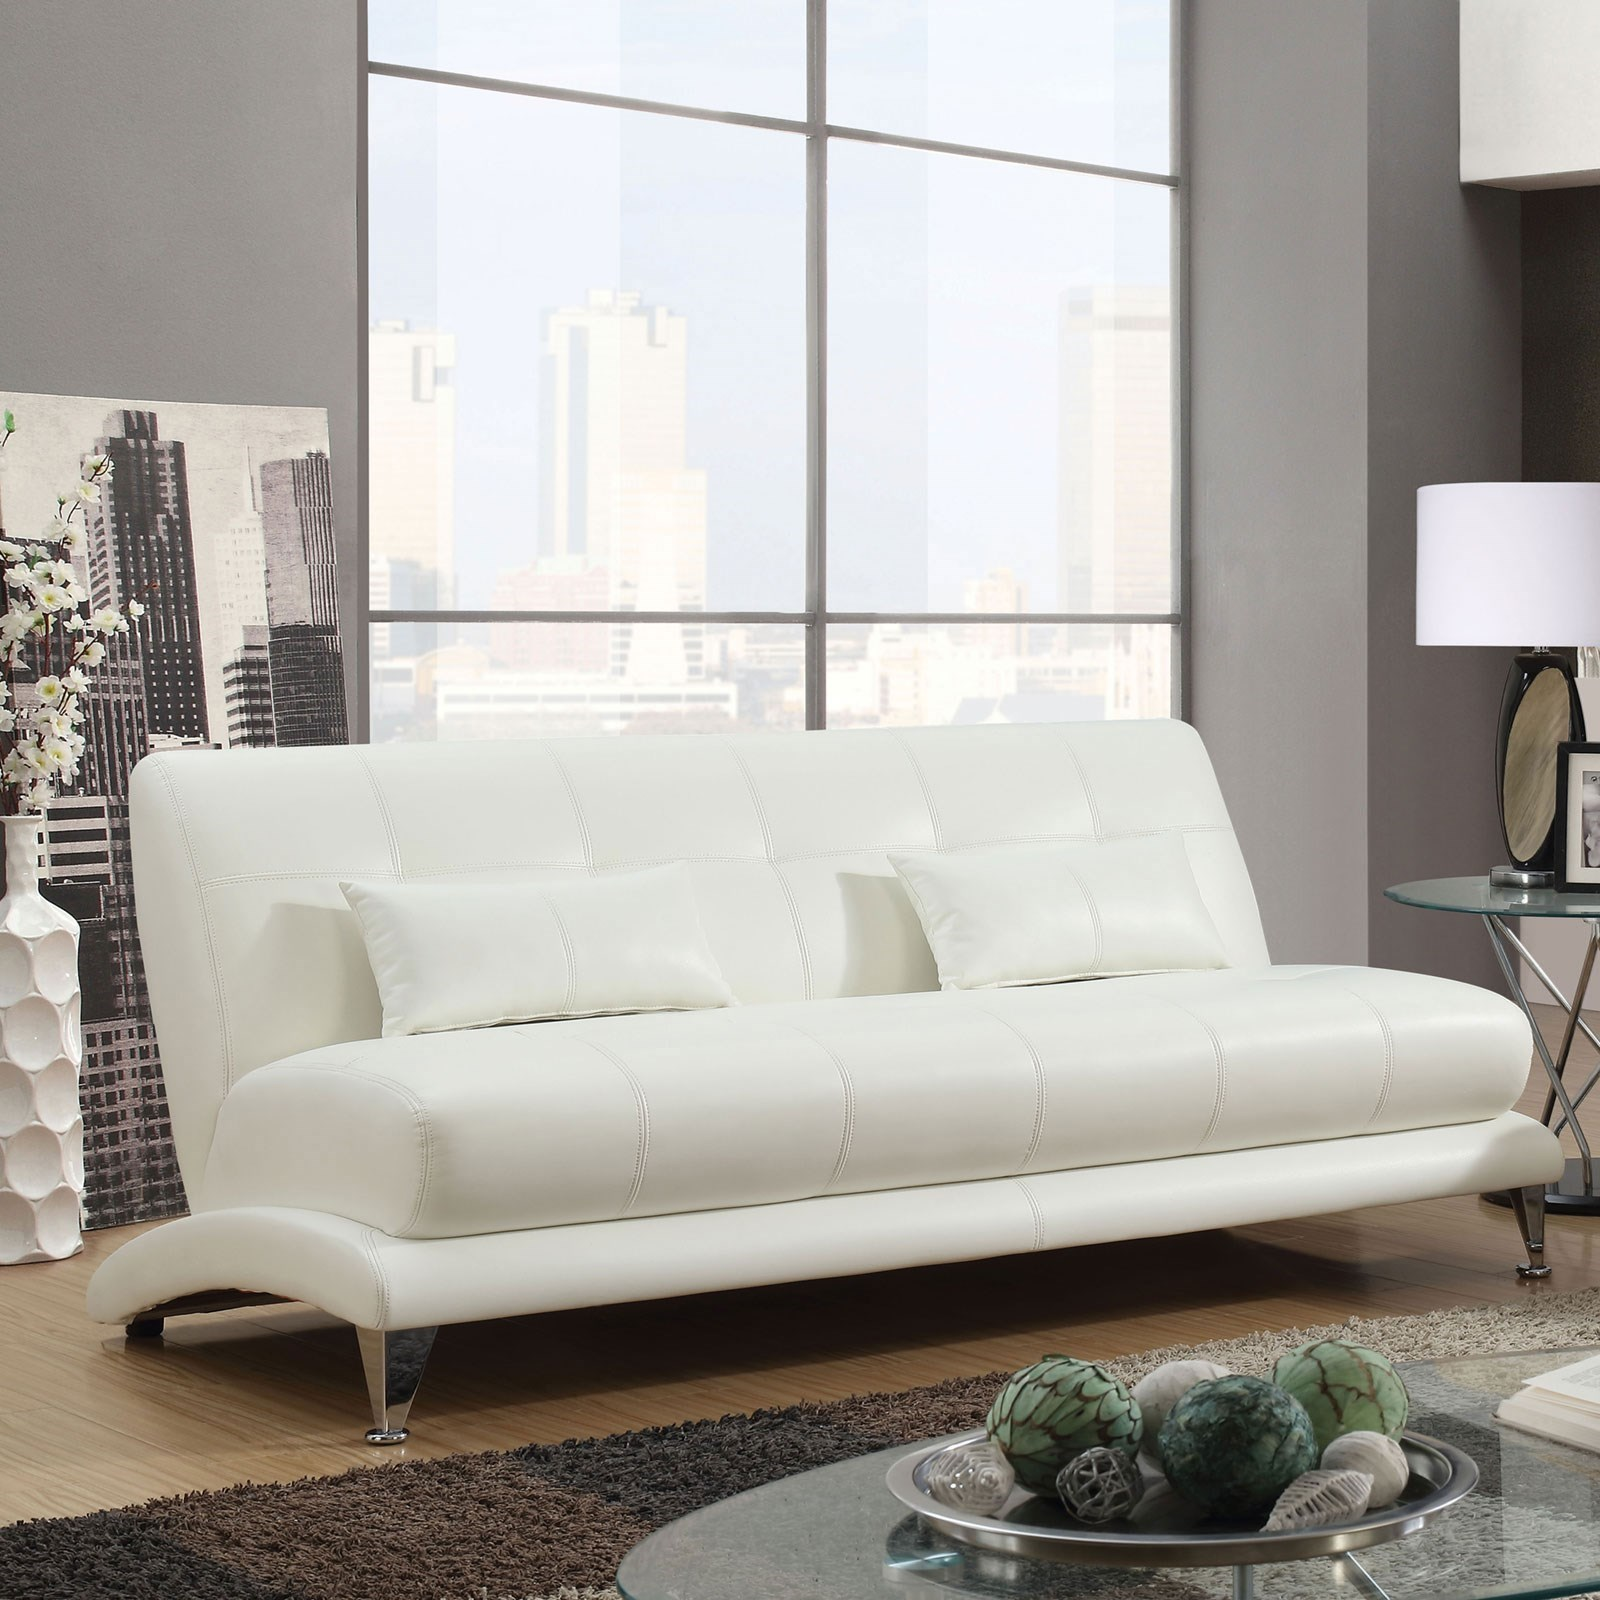 Sherri Contemporary Tufted Sofa With Pillows By Furniture Of America At Rooms For Less